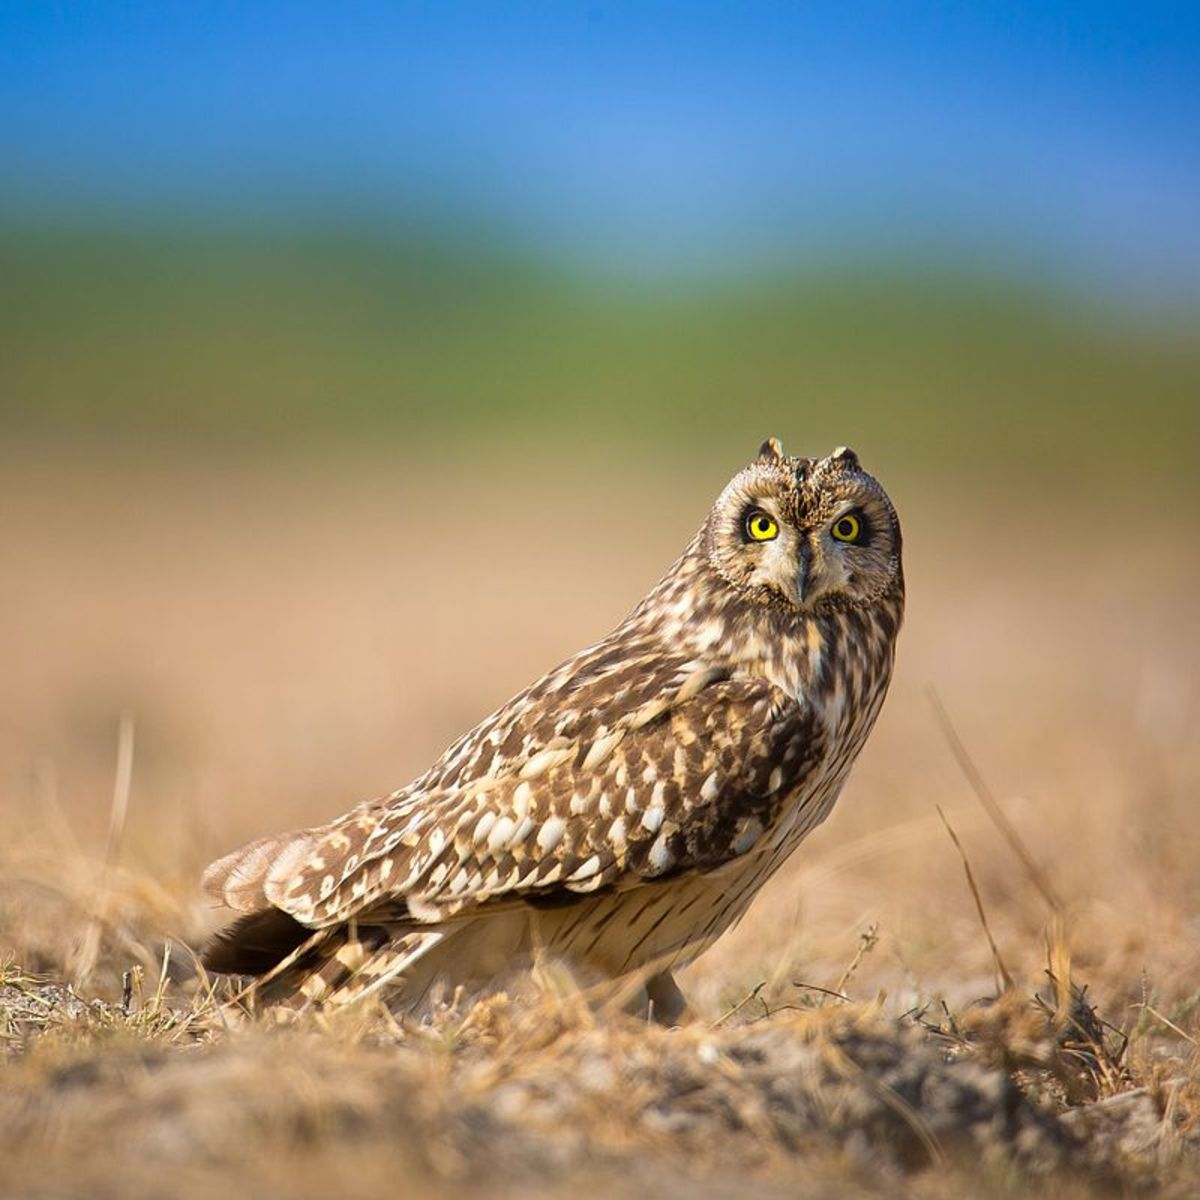 Short-eared owls are one of the most widely distributed birds in the world- found on all continents except for Australia and Antarctica. Source: Sumeet Moghe via Wikimedia Commons